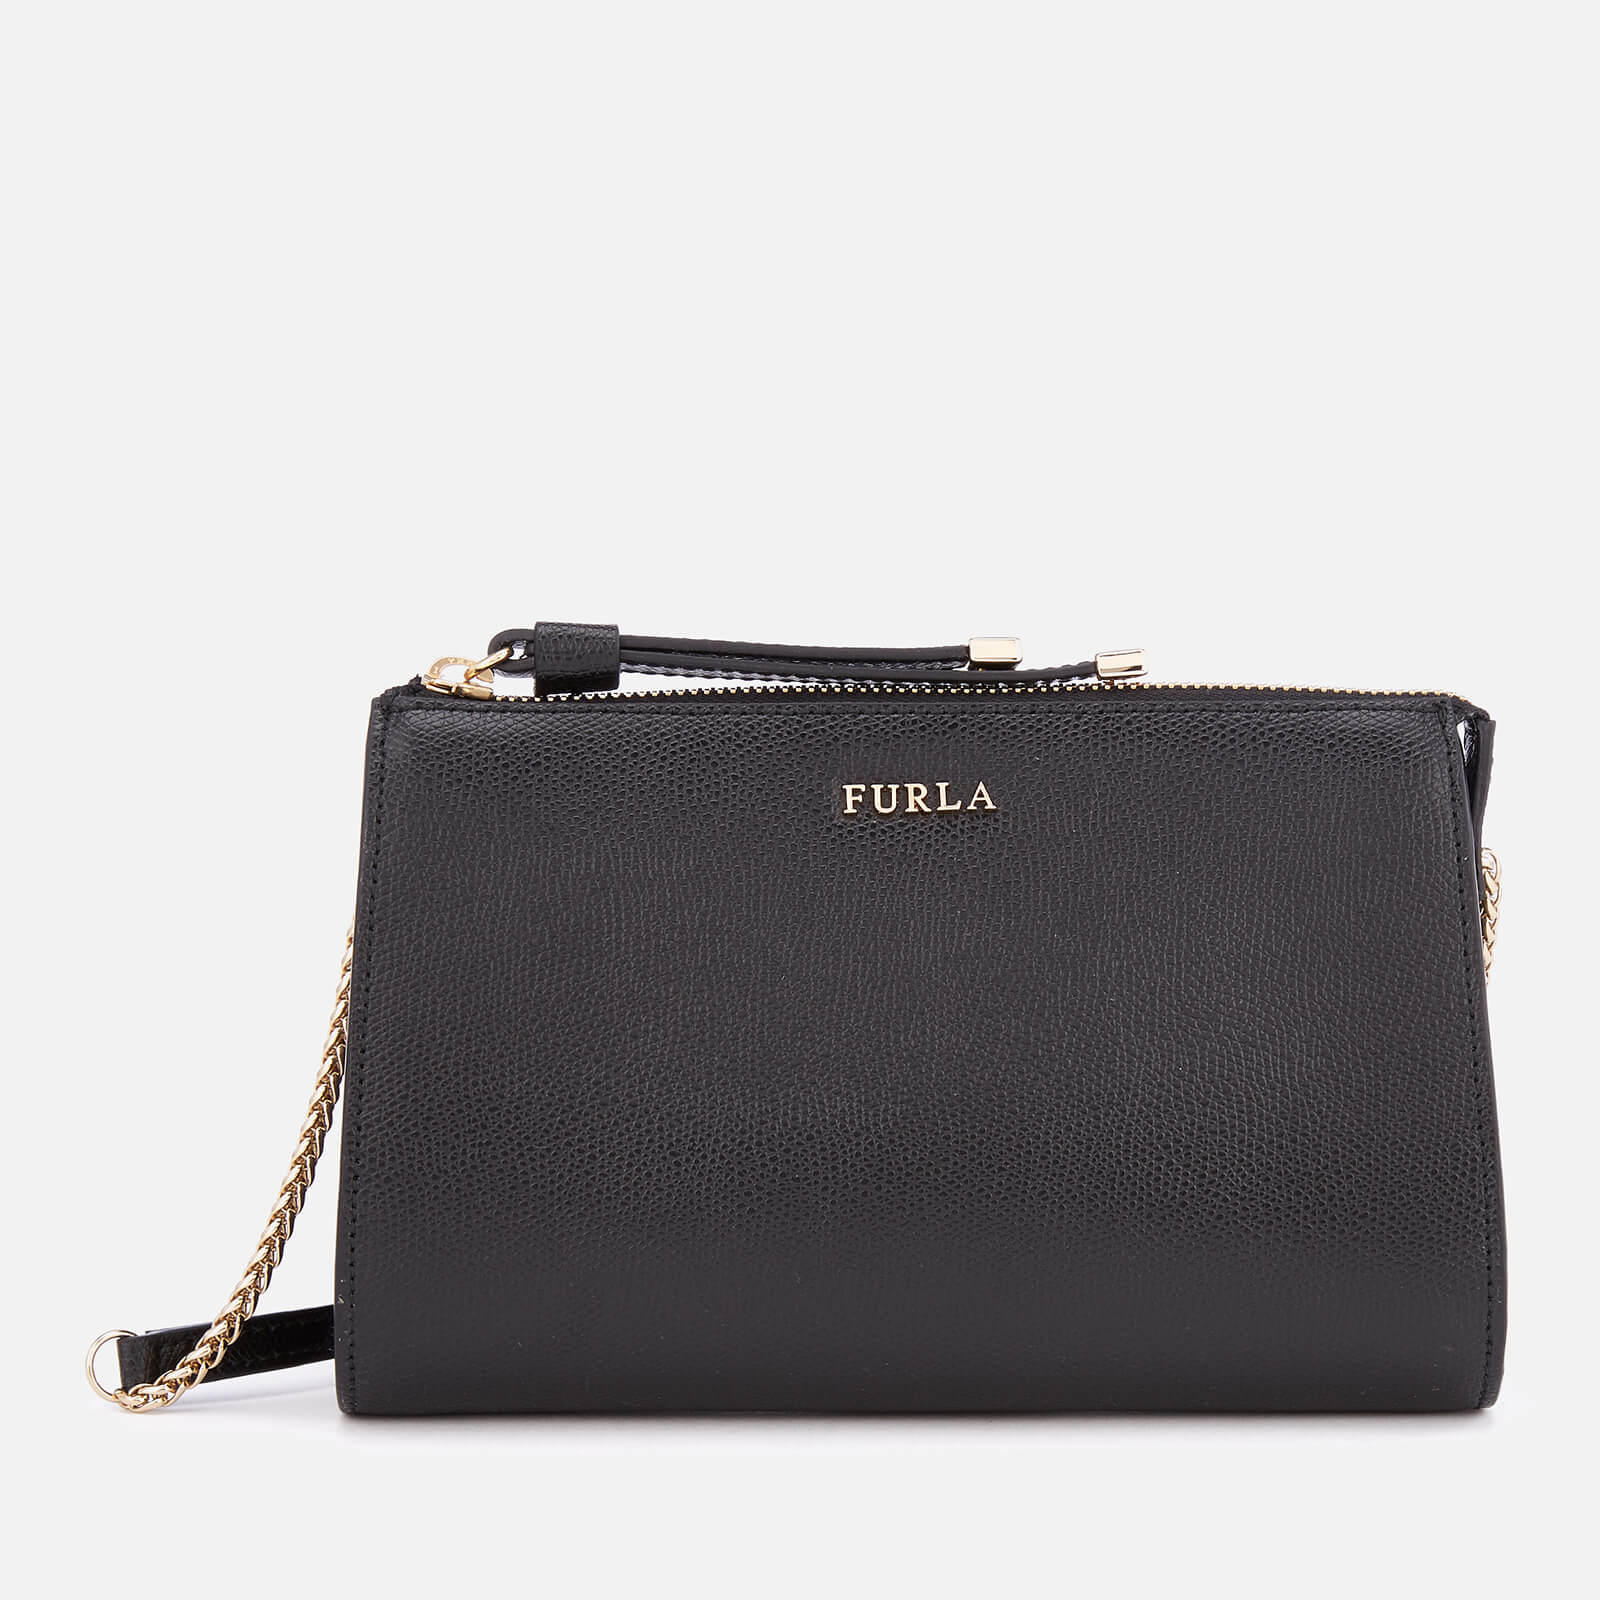 Furla Women's Luna Xl Cross Body Bag Pouch - Black 原價185英鎊 優惠價148